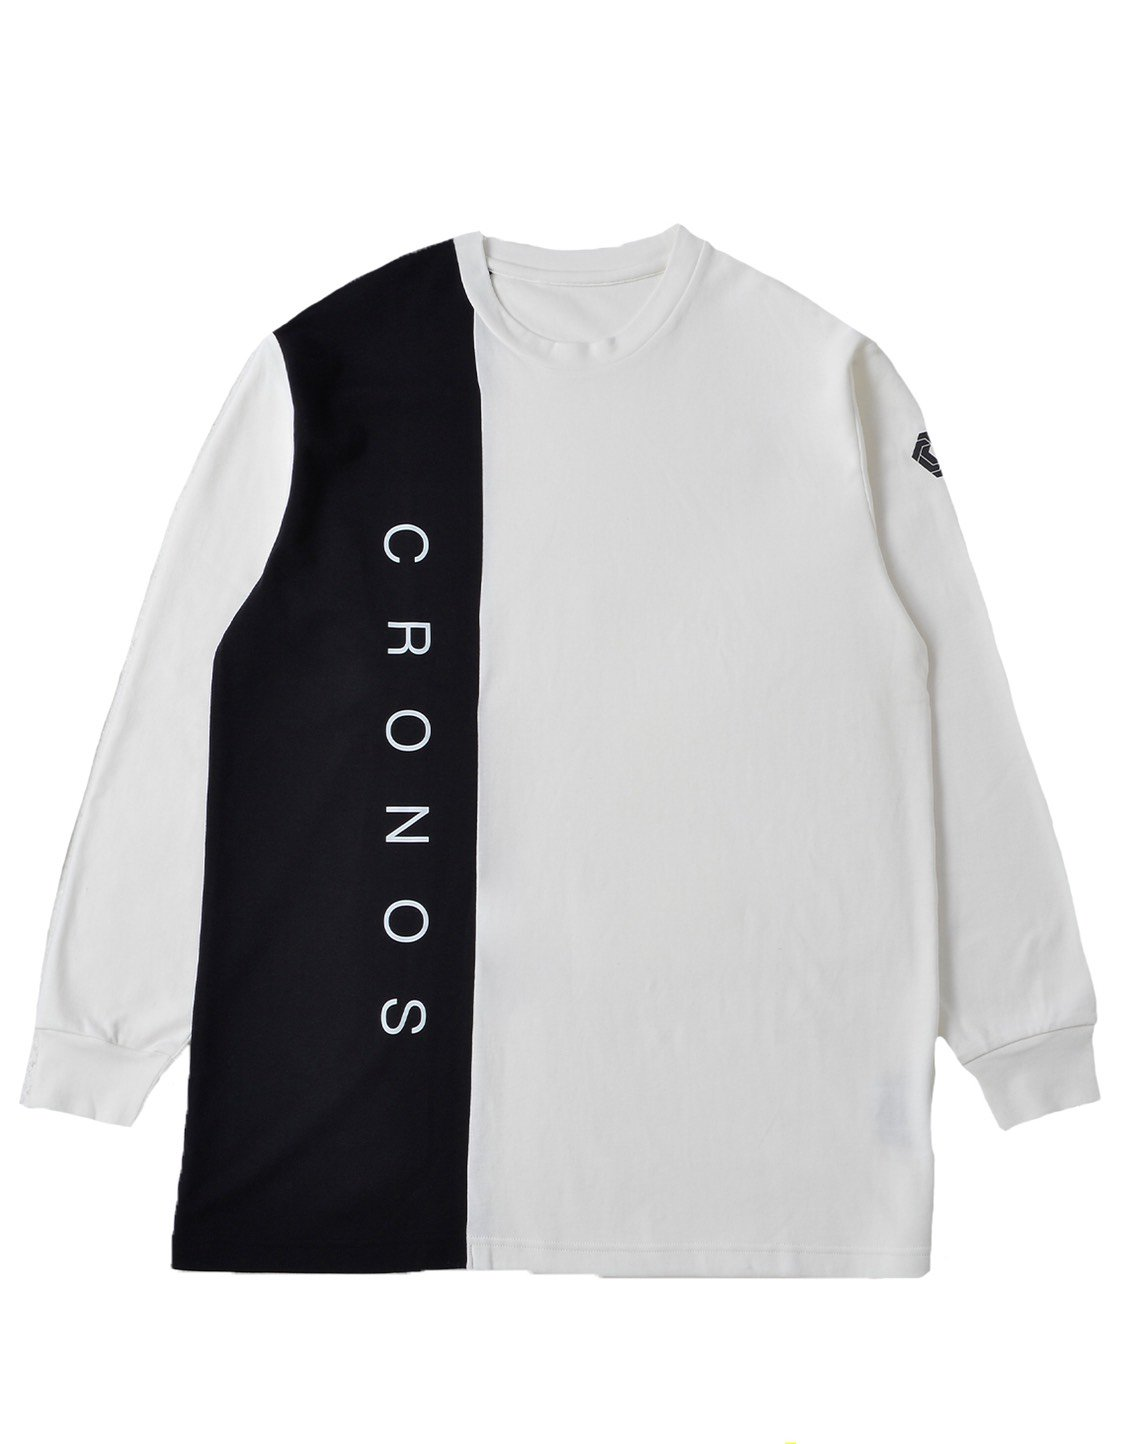 <img class='new_mark_img1' src='https://img.shop-pro.jp/img/new/icons1.gif' style='border:none;display:inline;margin:0px;padding:0px;width:auto;' />CRONOS RIGHT SIDE LINE LONGSLEEVE【WHITE】